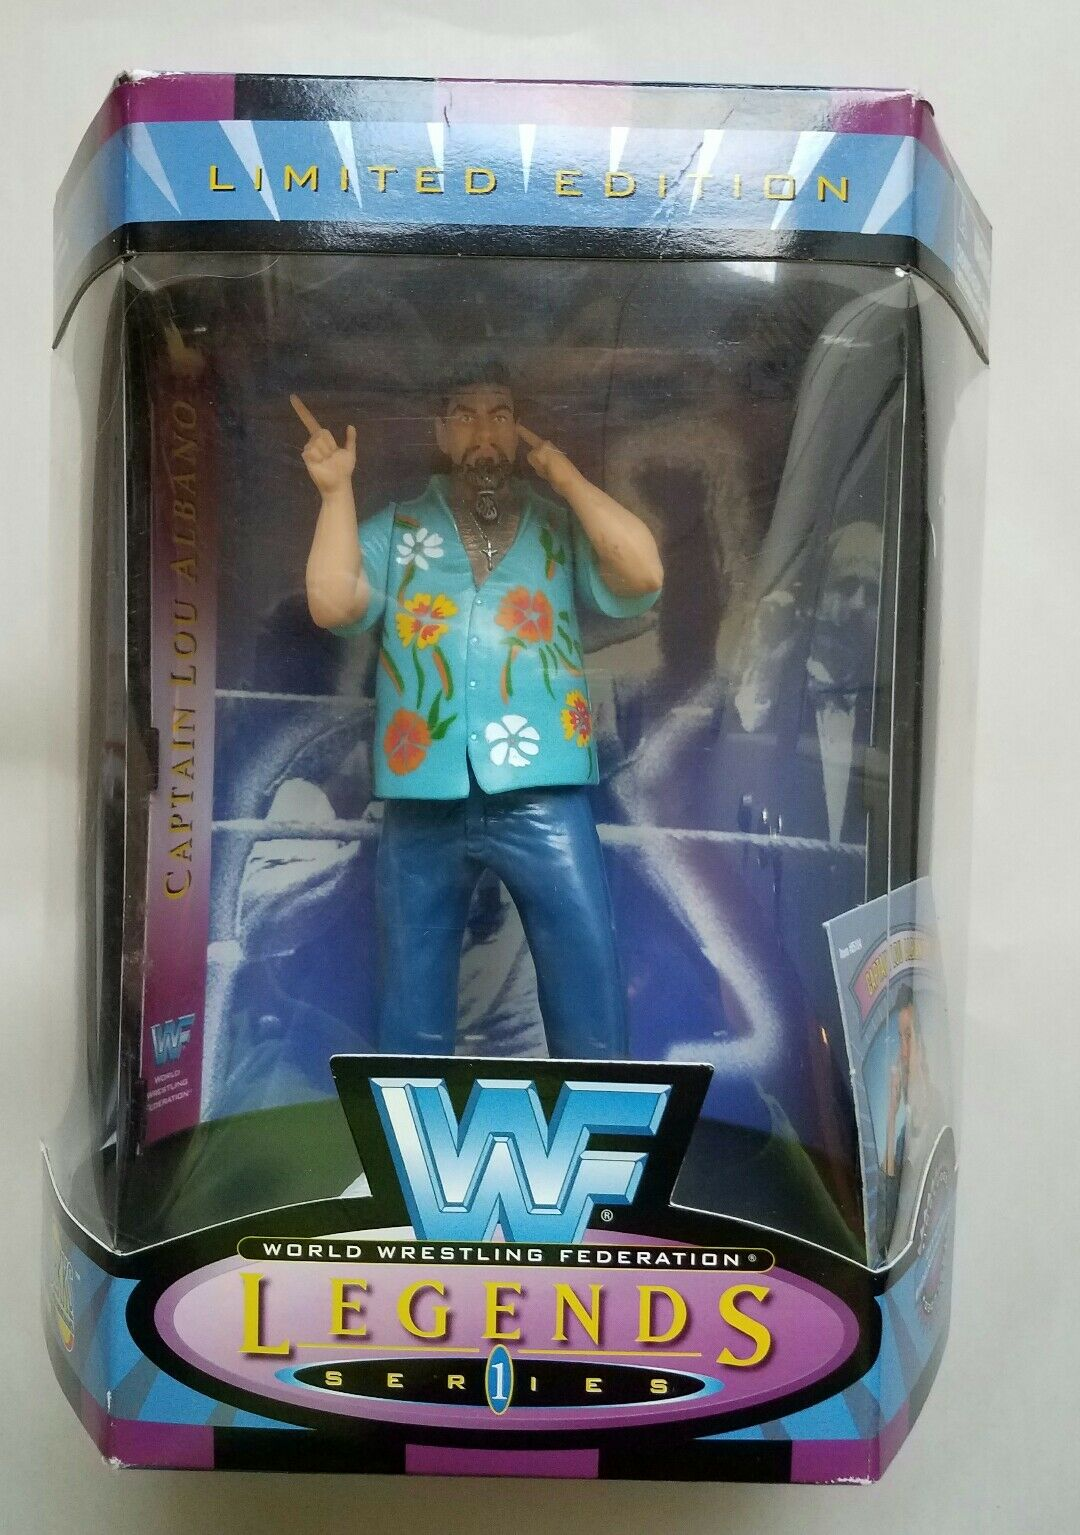 Captain Lou Albano Signed & Inscribed WWF WWE Legends Series 1 Action Figure